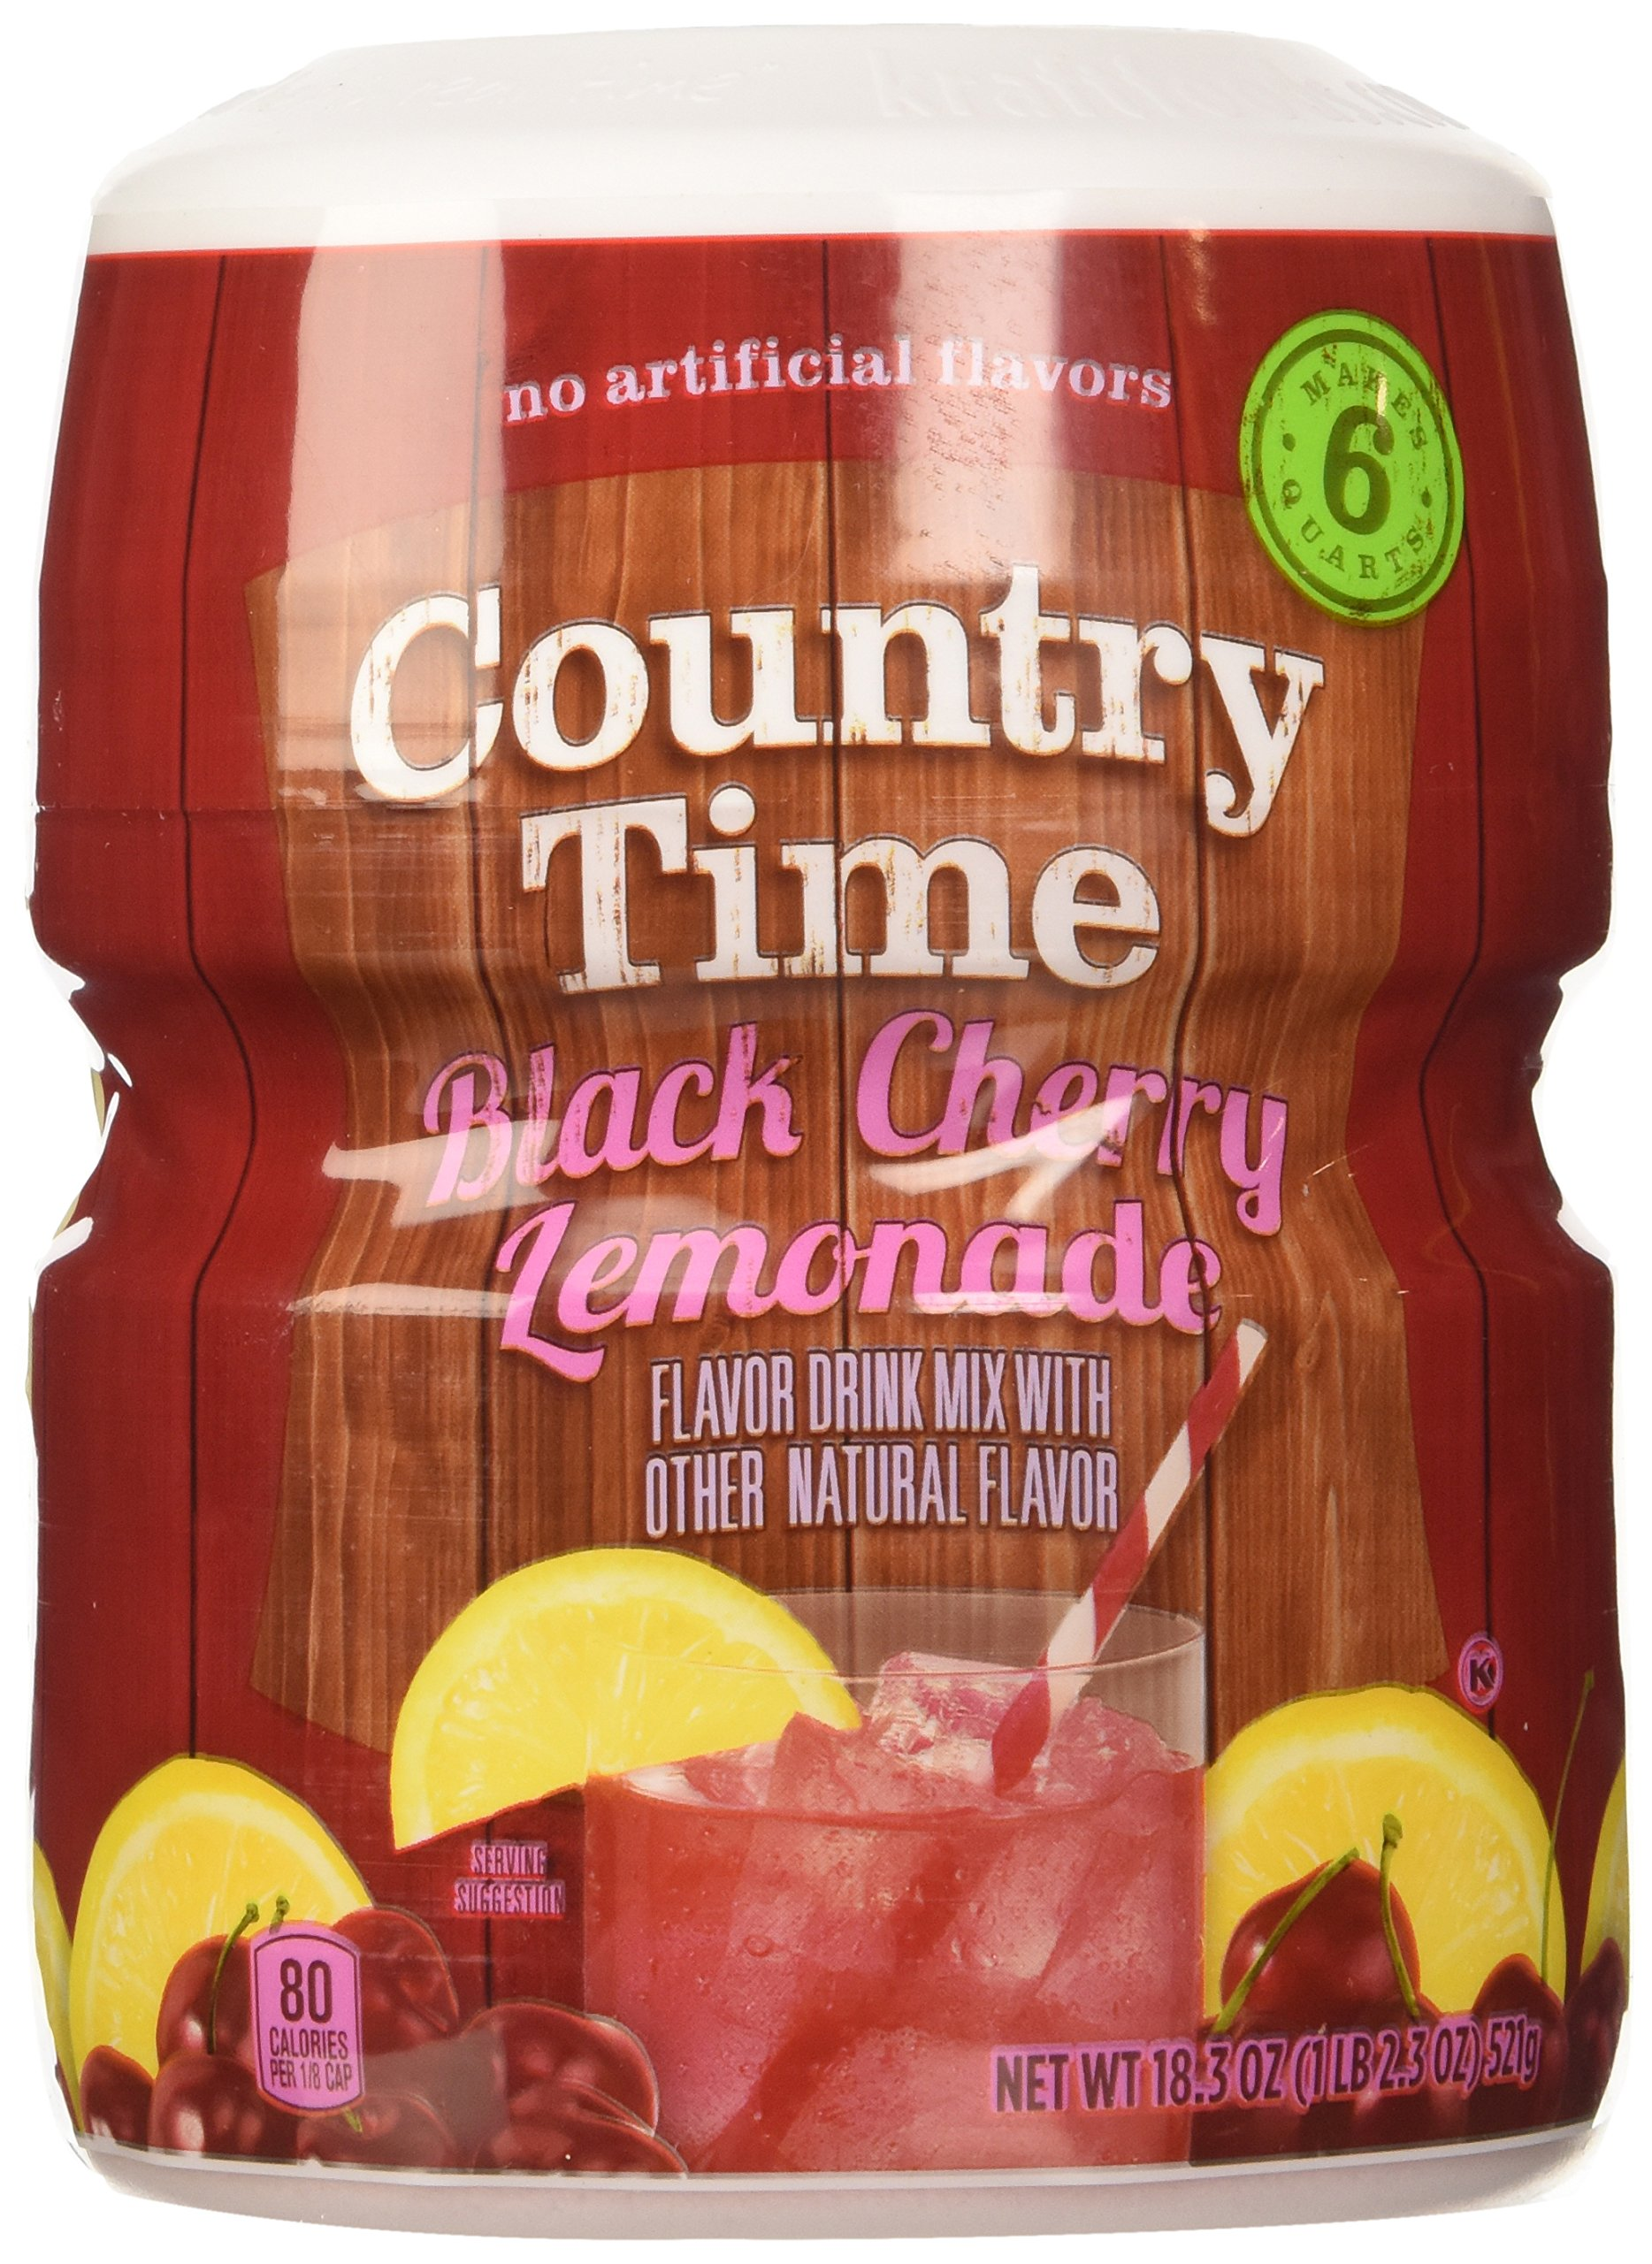 Country Time, Black Cherry Lemonade Drink Mix, 18.3oz Tub (Pack of 3)